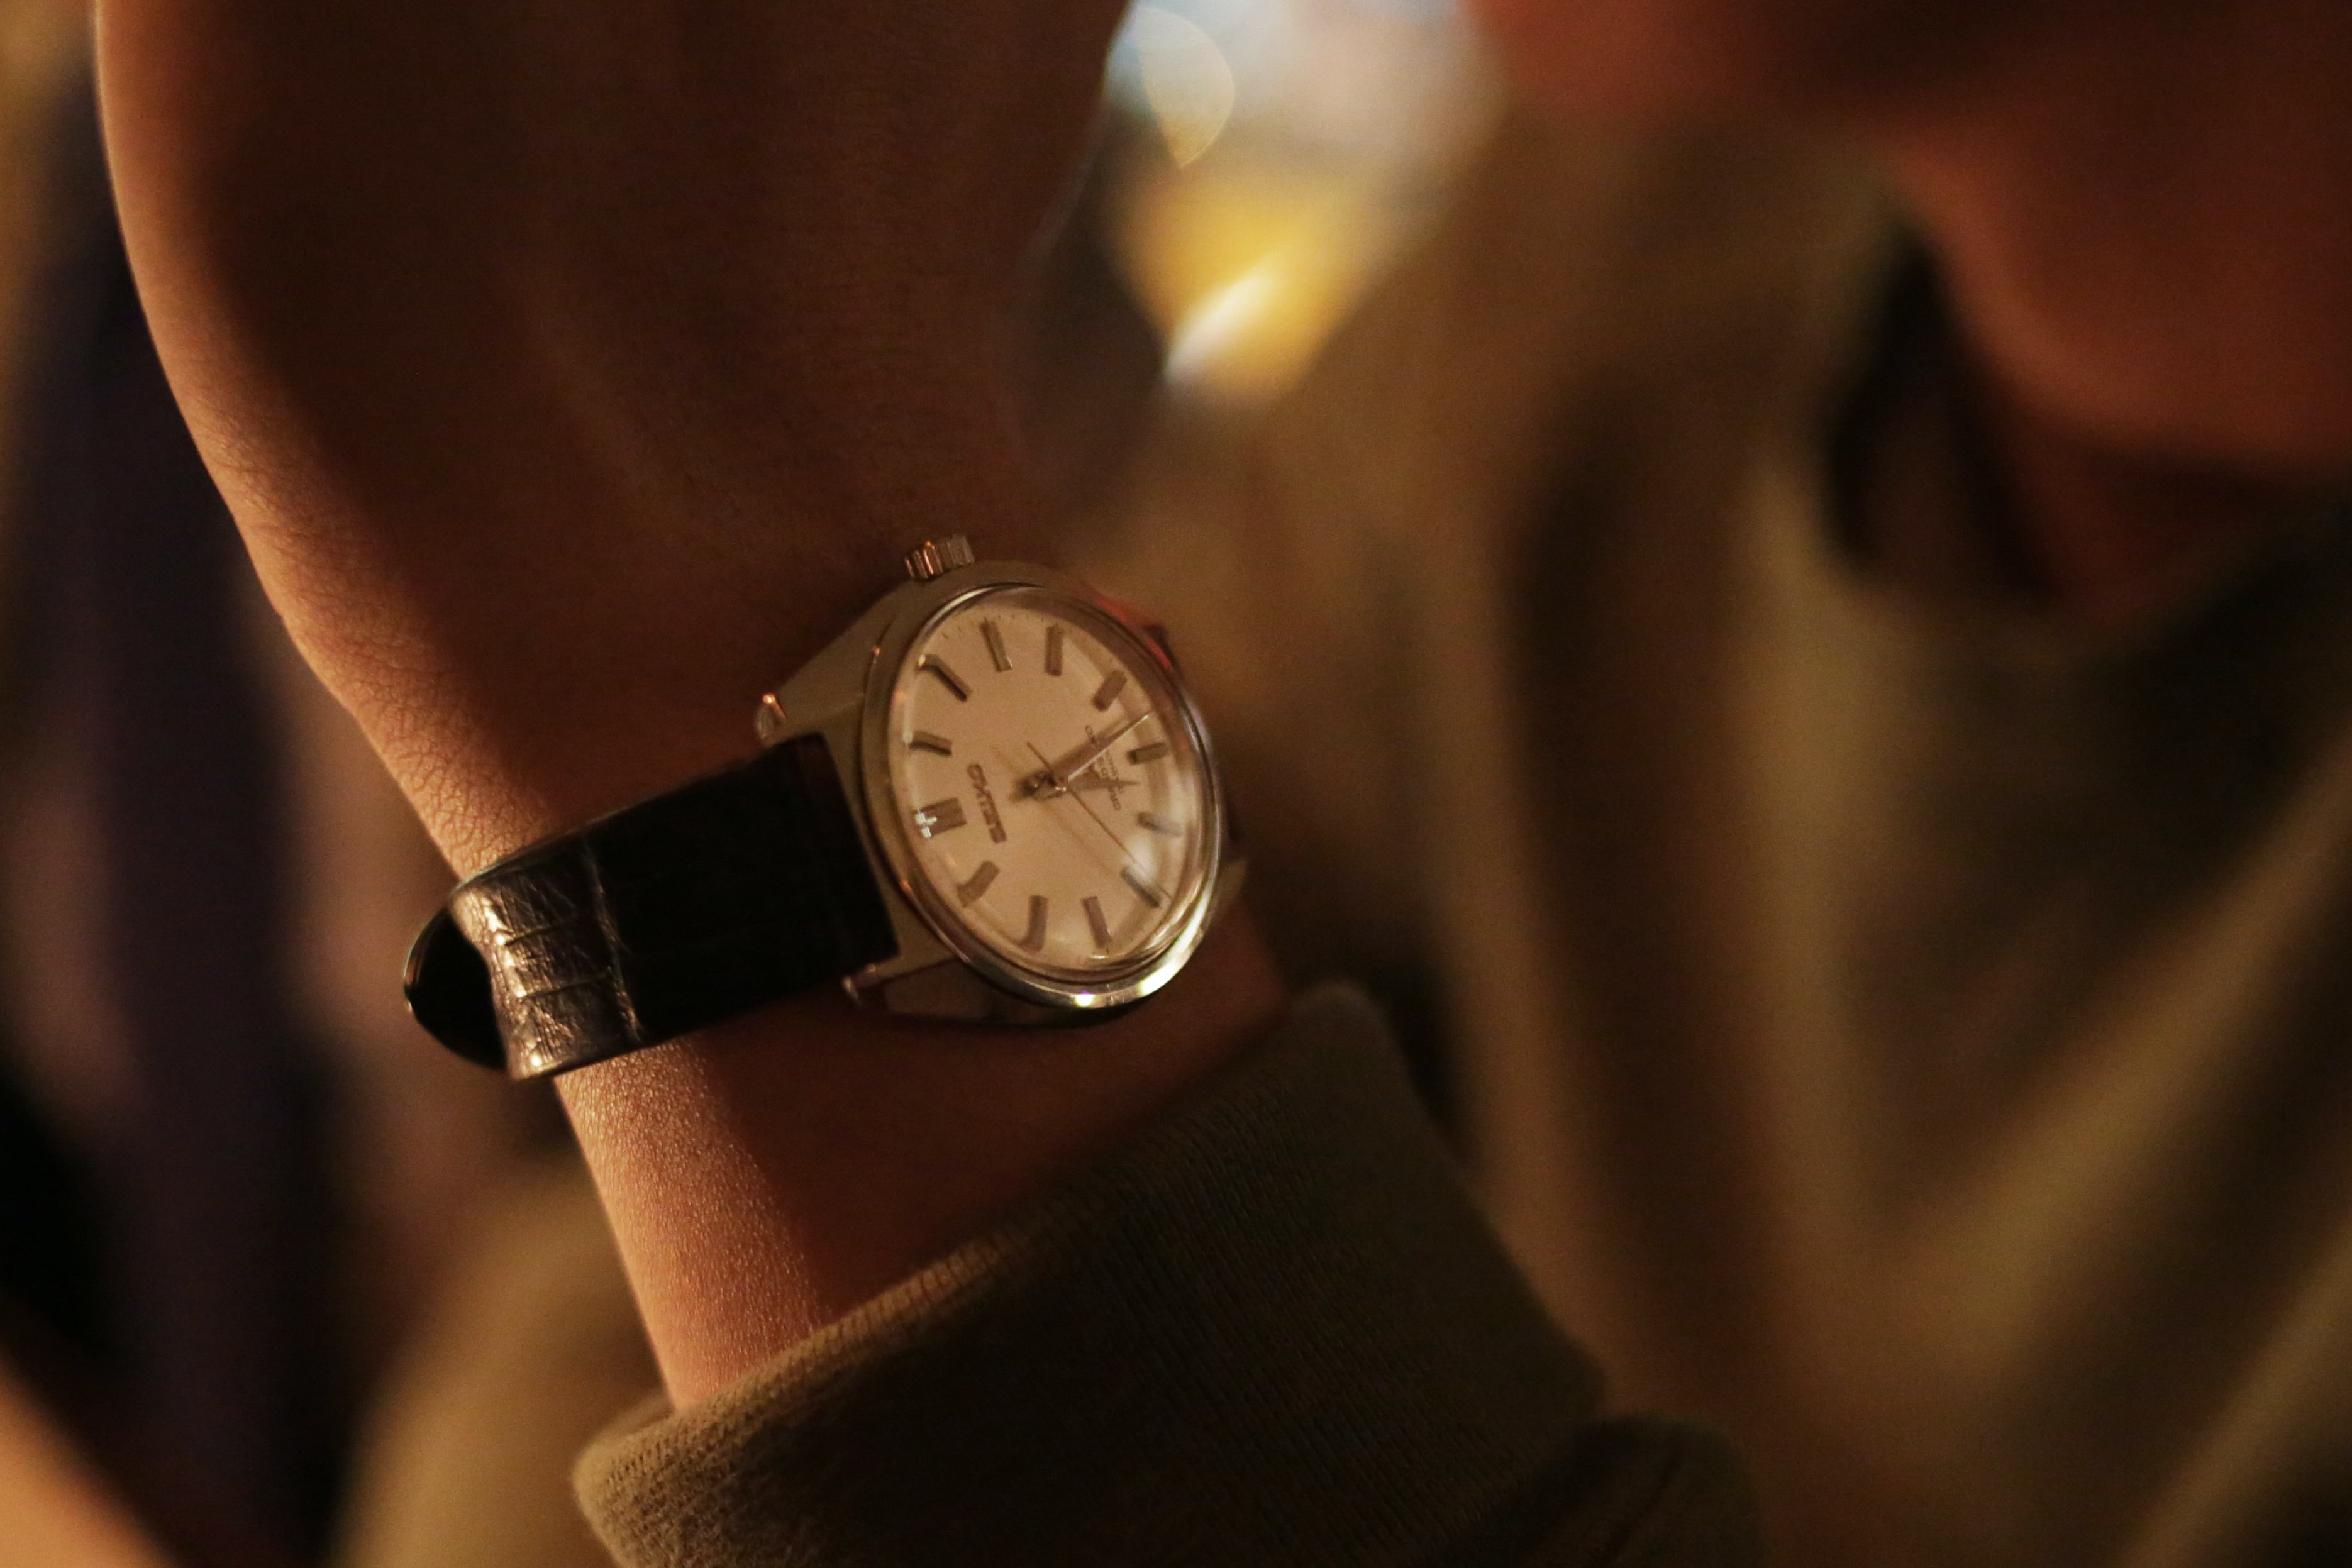 Watch Spotting: The HODINKEE #LeapDay Celebration In NYC Watch Spotting: The HODINKEE #LeapDay Celebration In NYC 588A970900